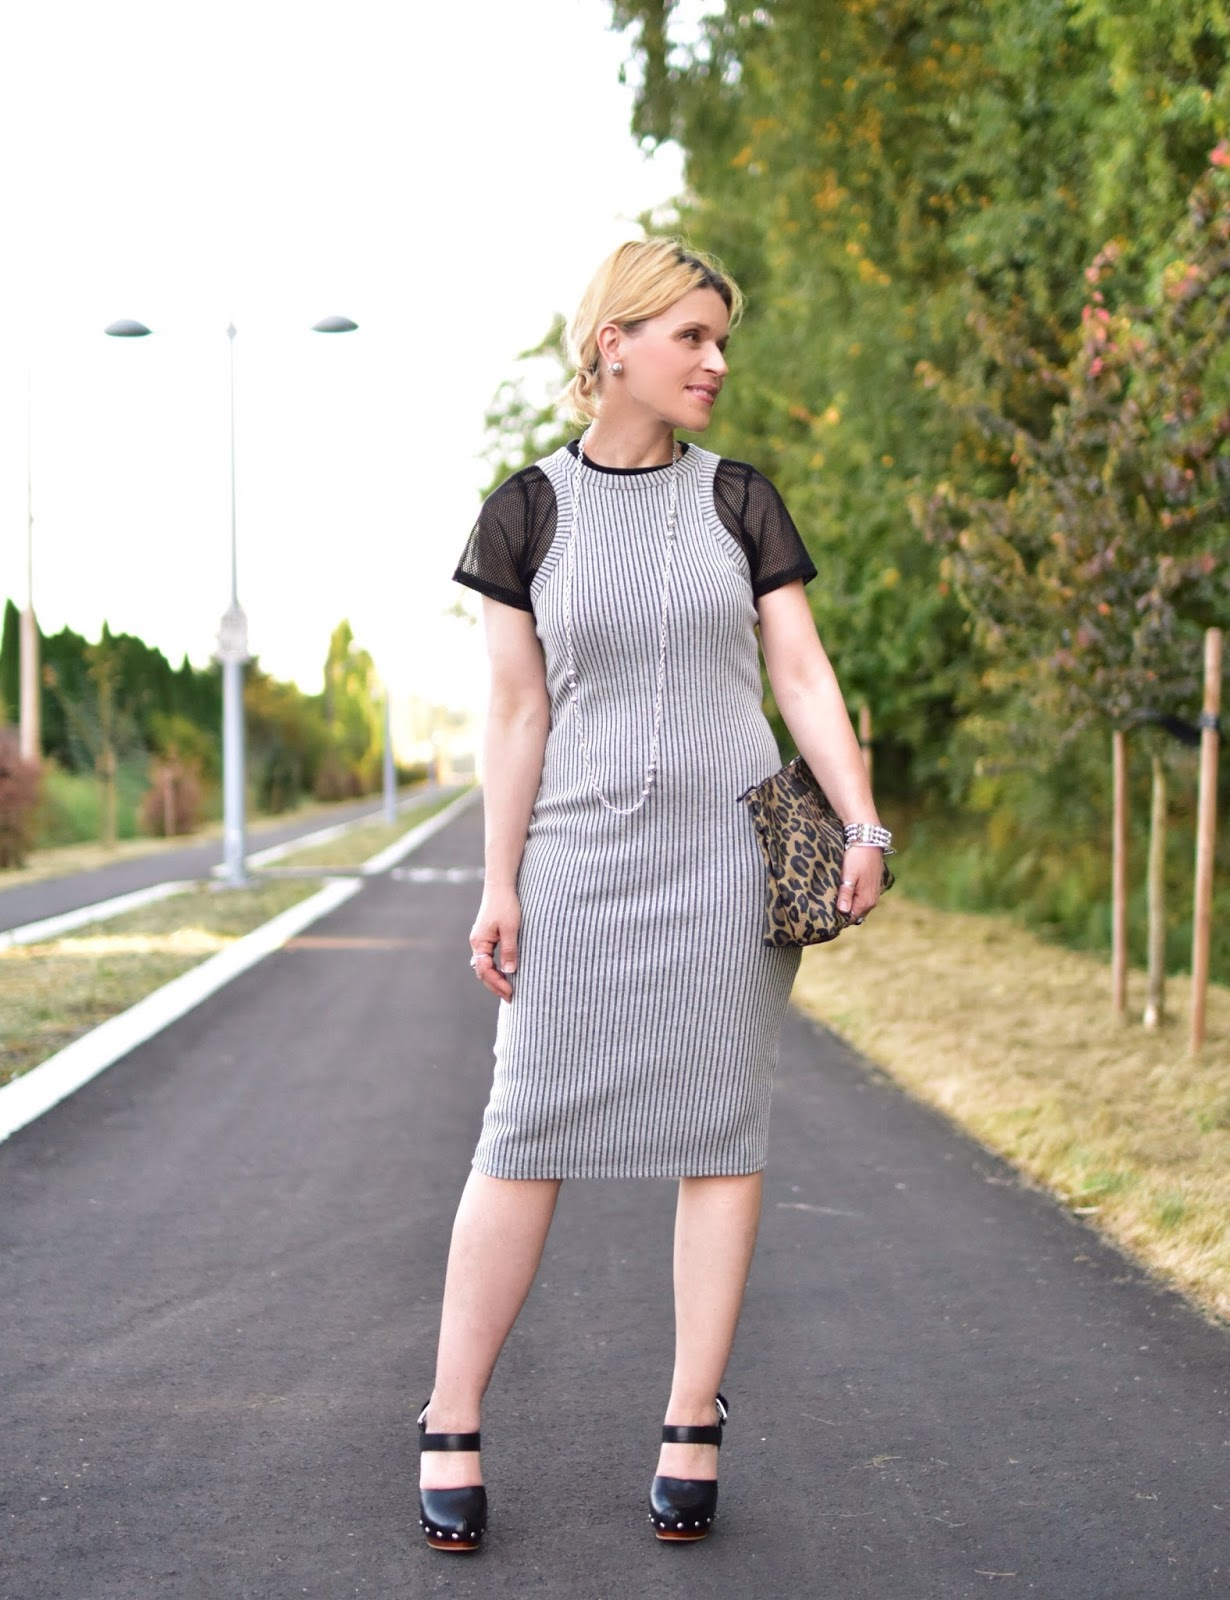 Monika Faulkner styles a tank dress with a mesh tee, platform heels, and leopard clutch